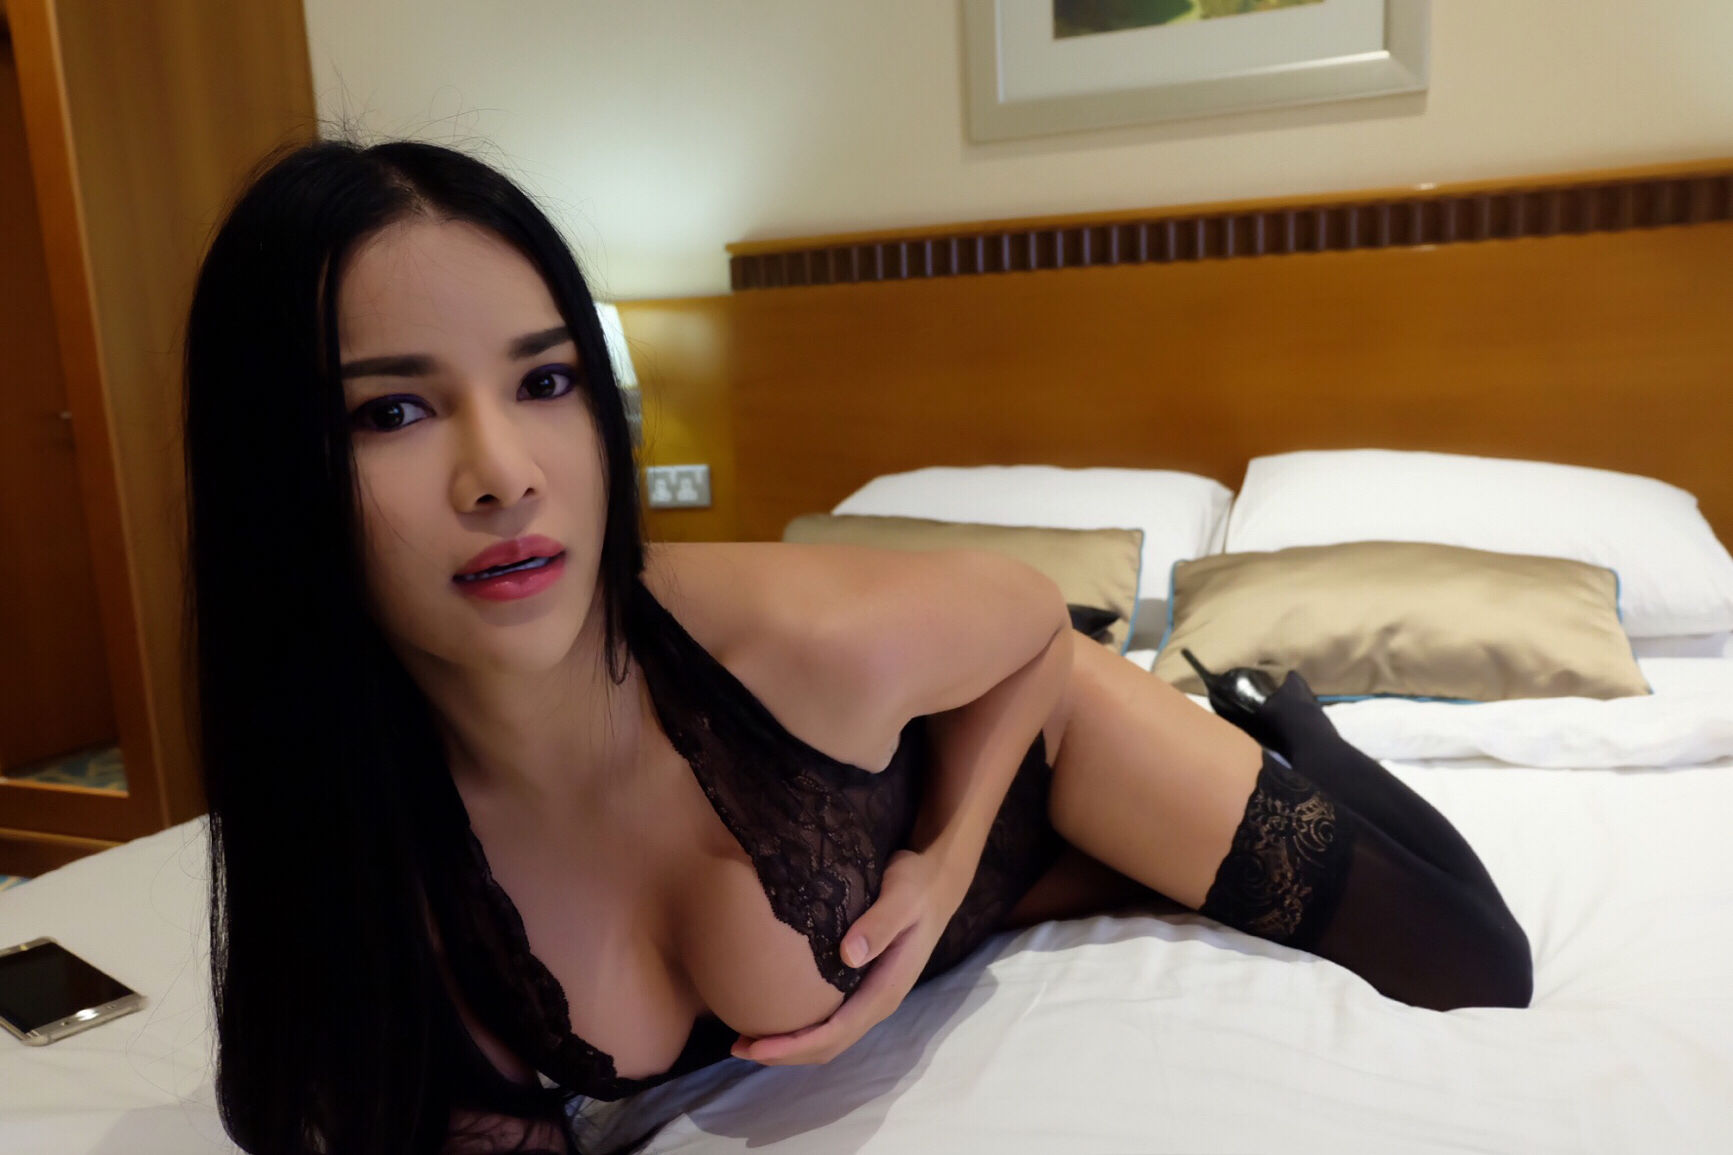 ts escort thailand dating escort service